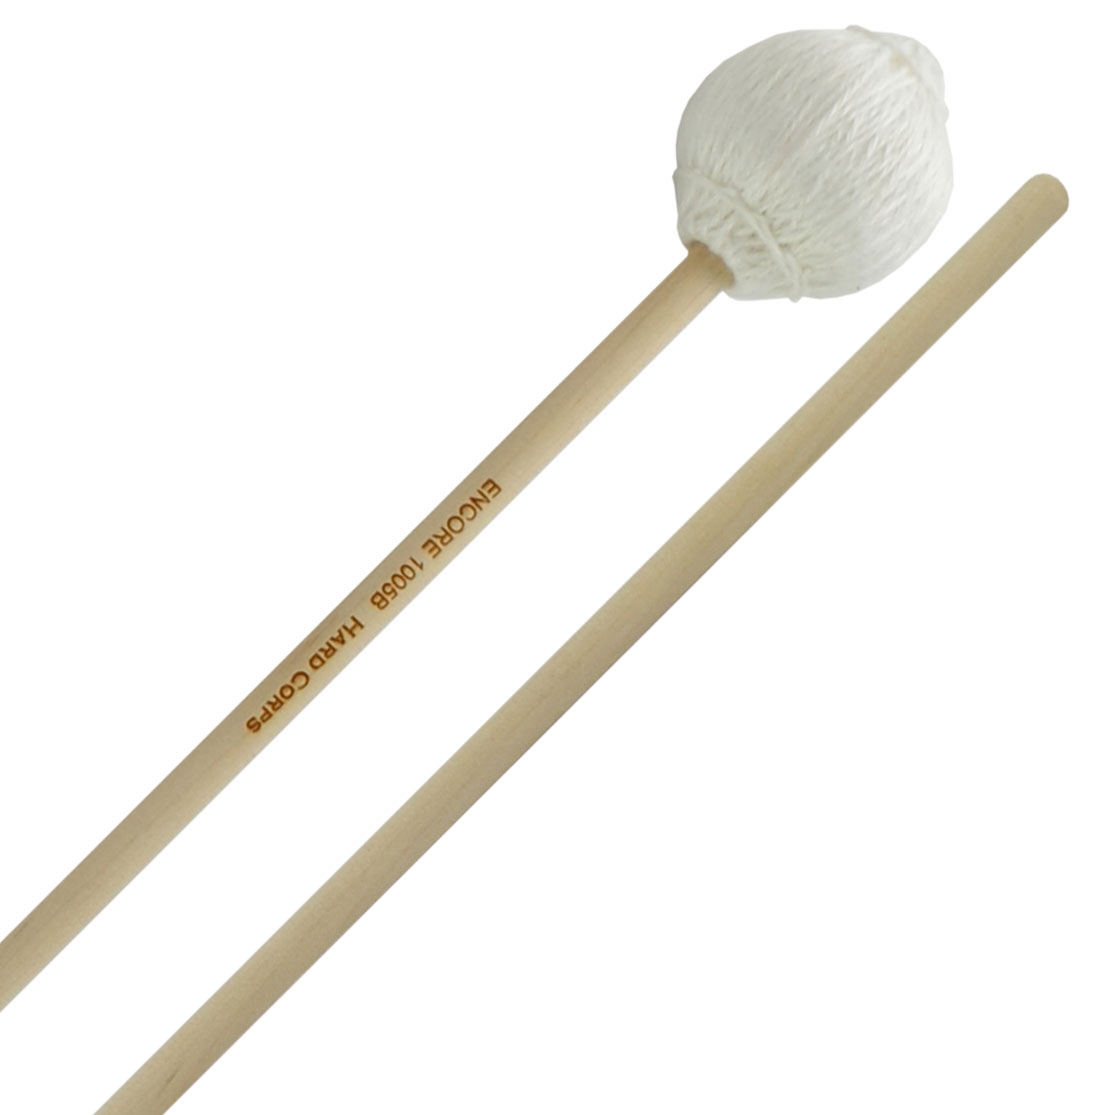 "Encore ""Hard Corps"" Series Soft Marimba Mallets with Birch Handles"